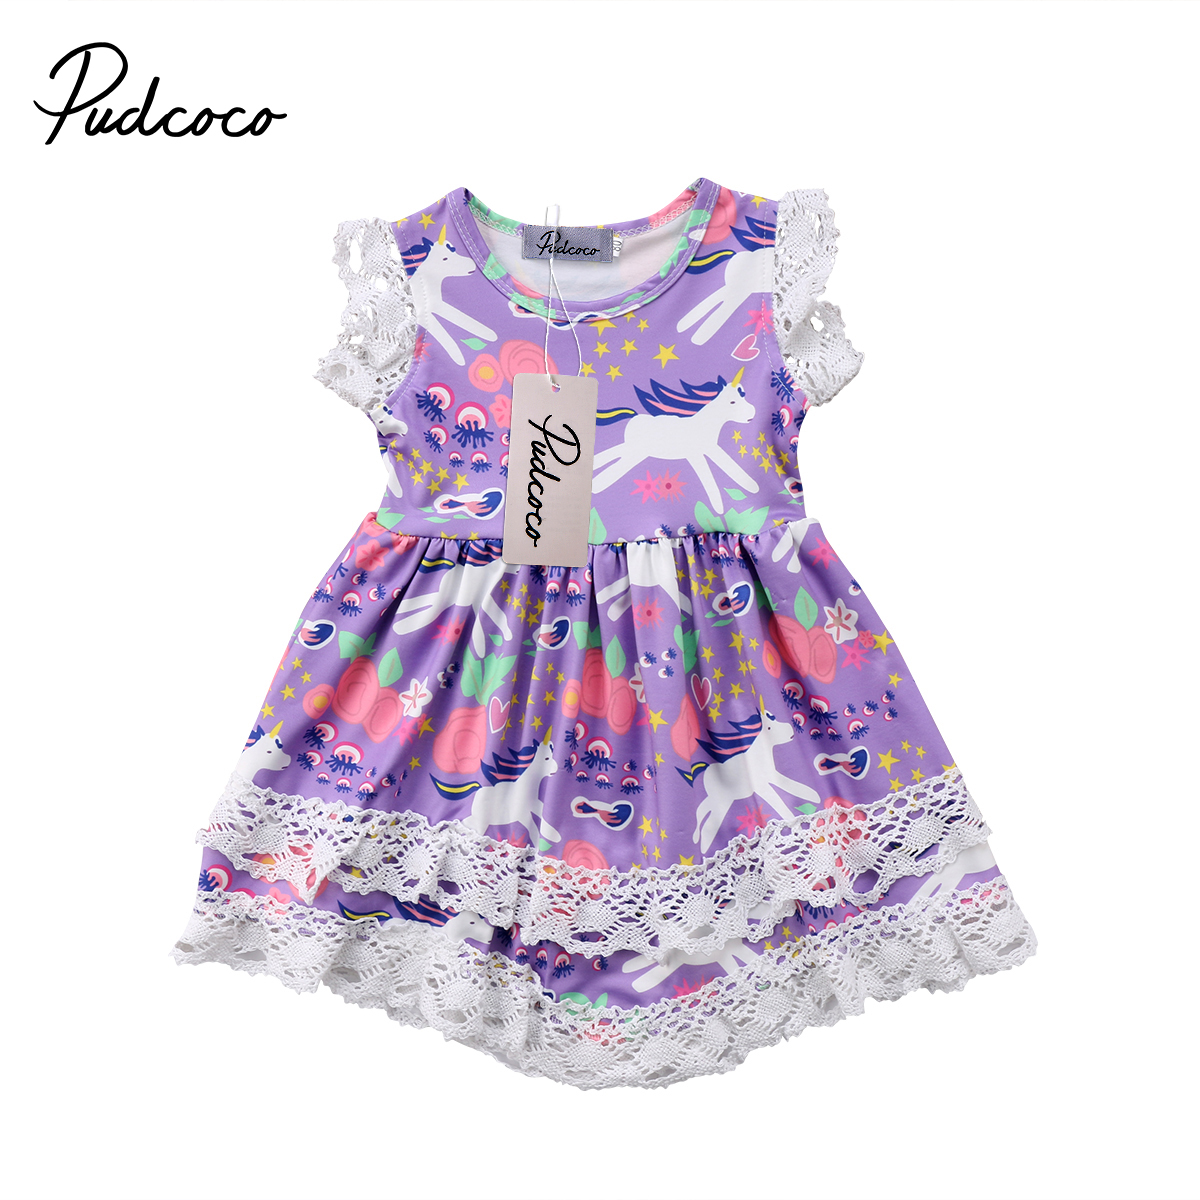 Toddler Kids Baby Girl Unicorn Dress Princess Party Pageant Lace Dresses Sleeveless Sundress 1-6T